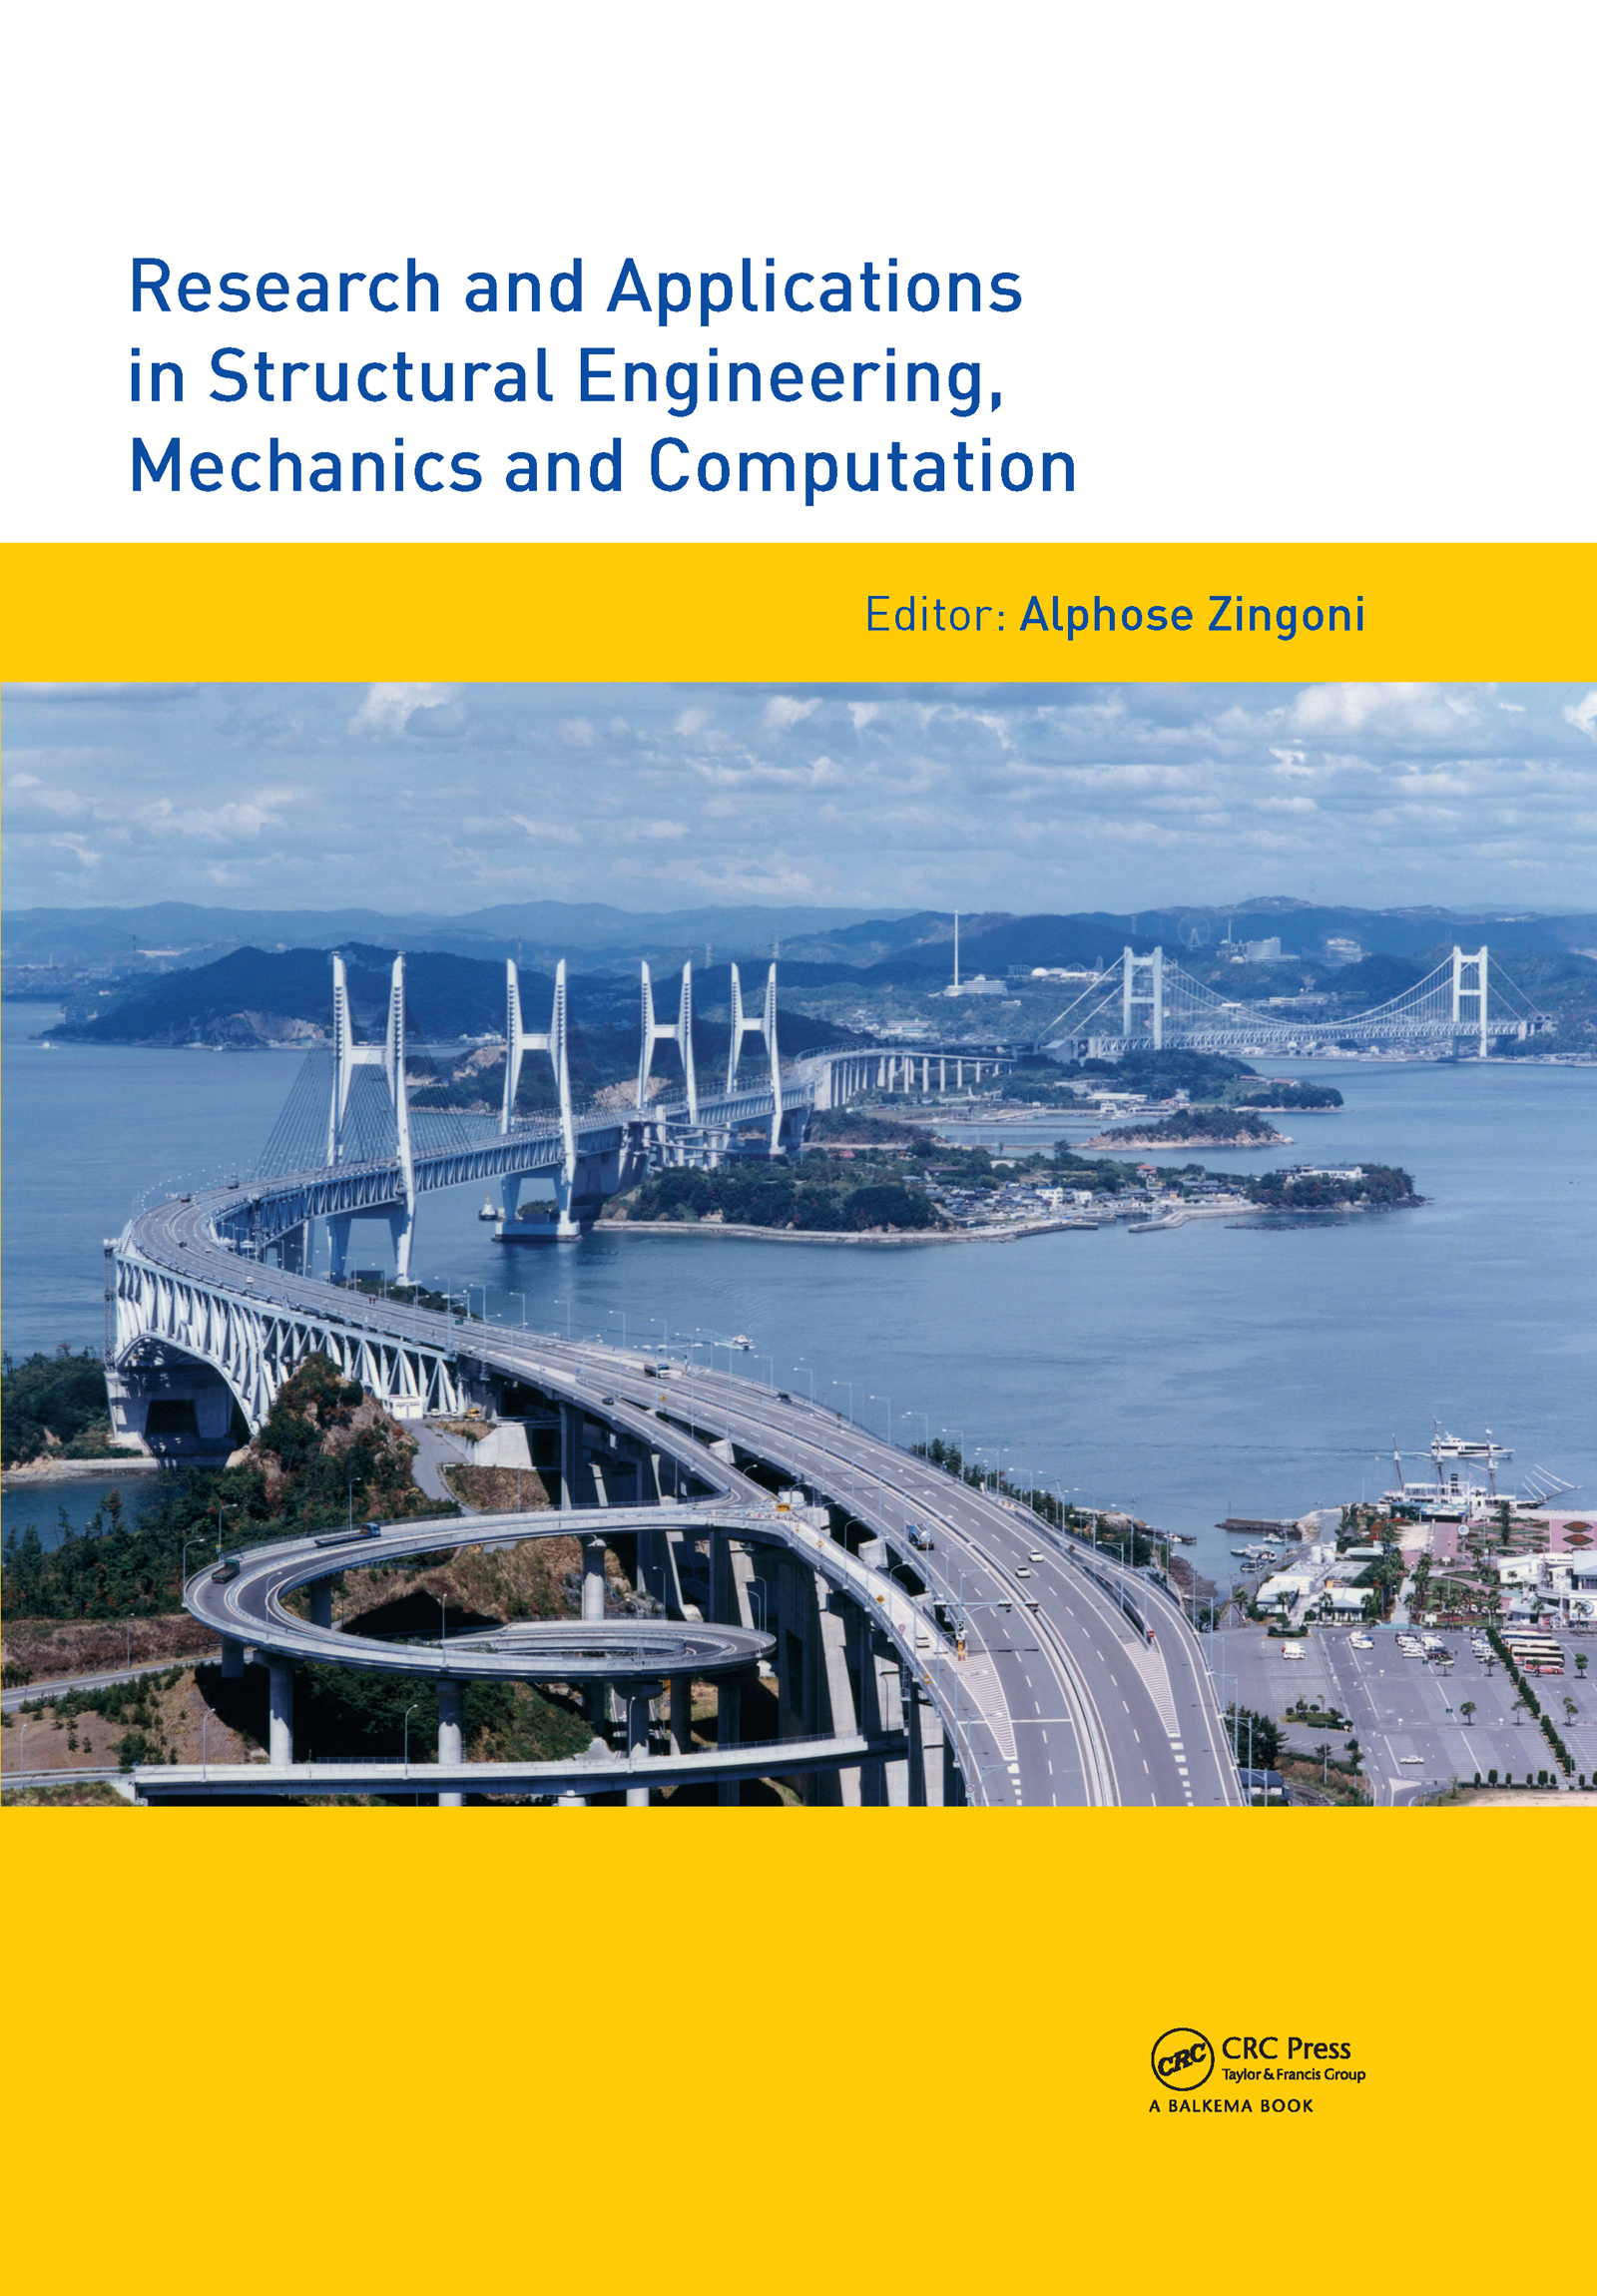 Research and Applications in Structural Engineering, Mechanics and Computation: 1st Edition (Pack - Book and CD) book cover